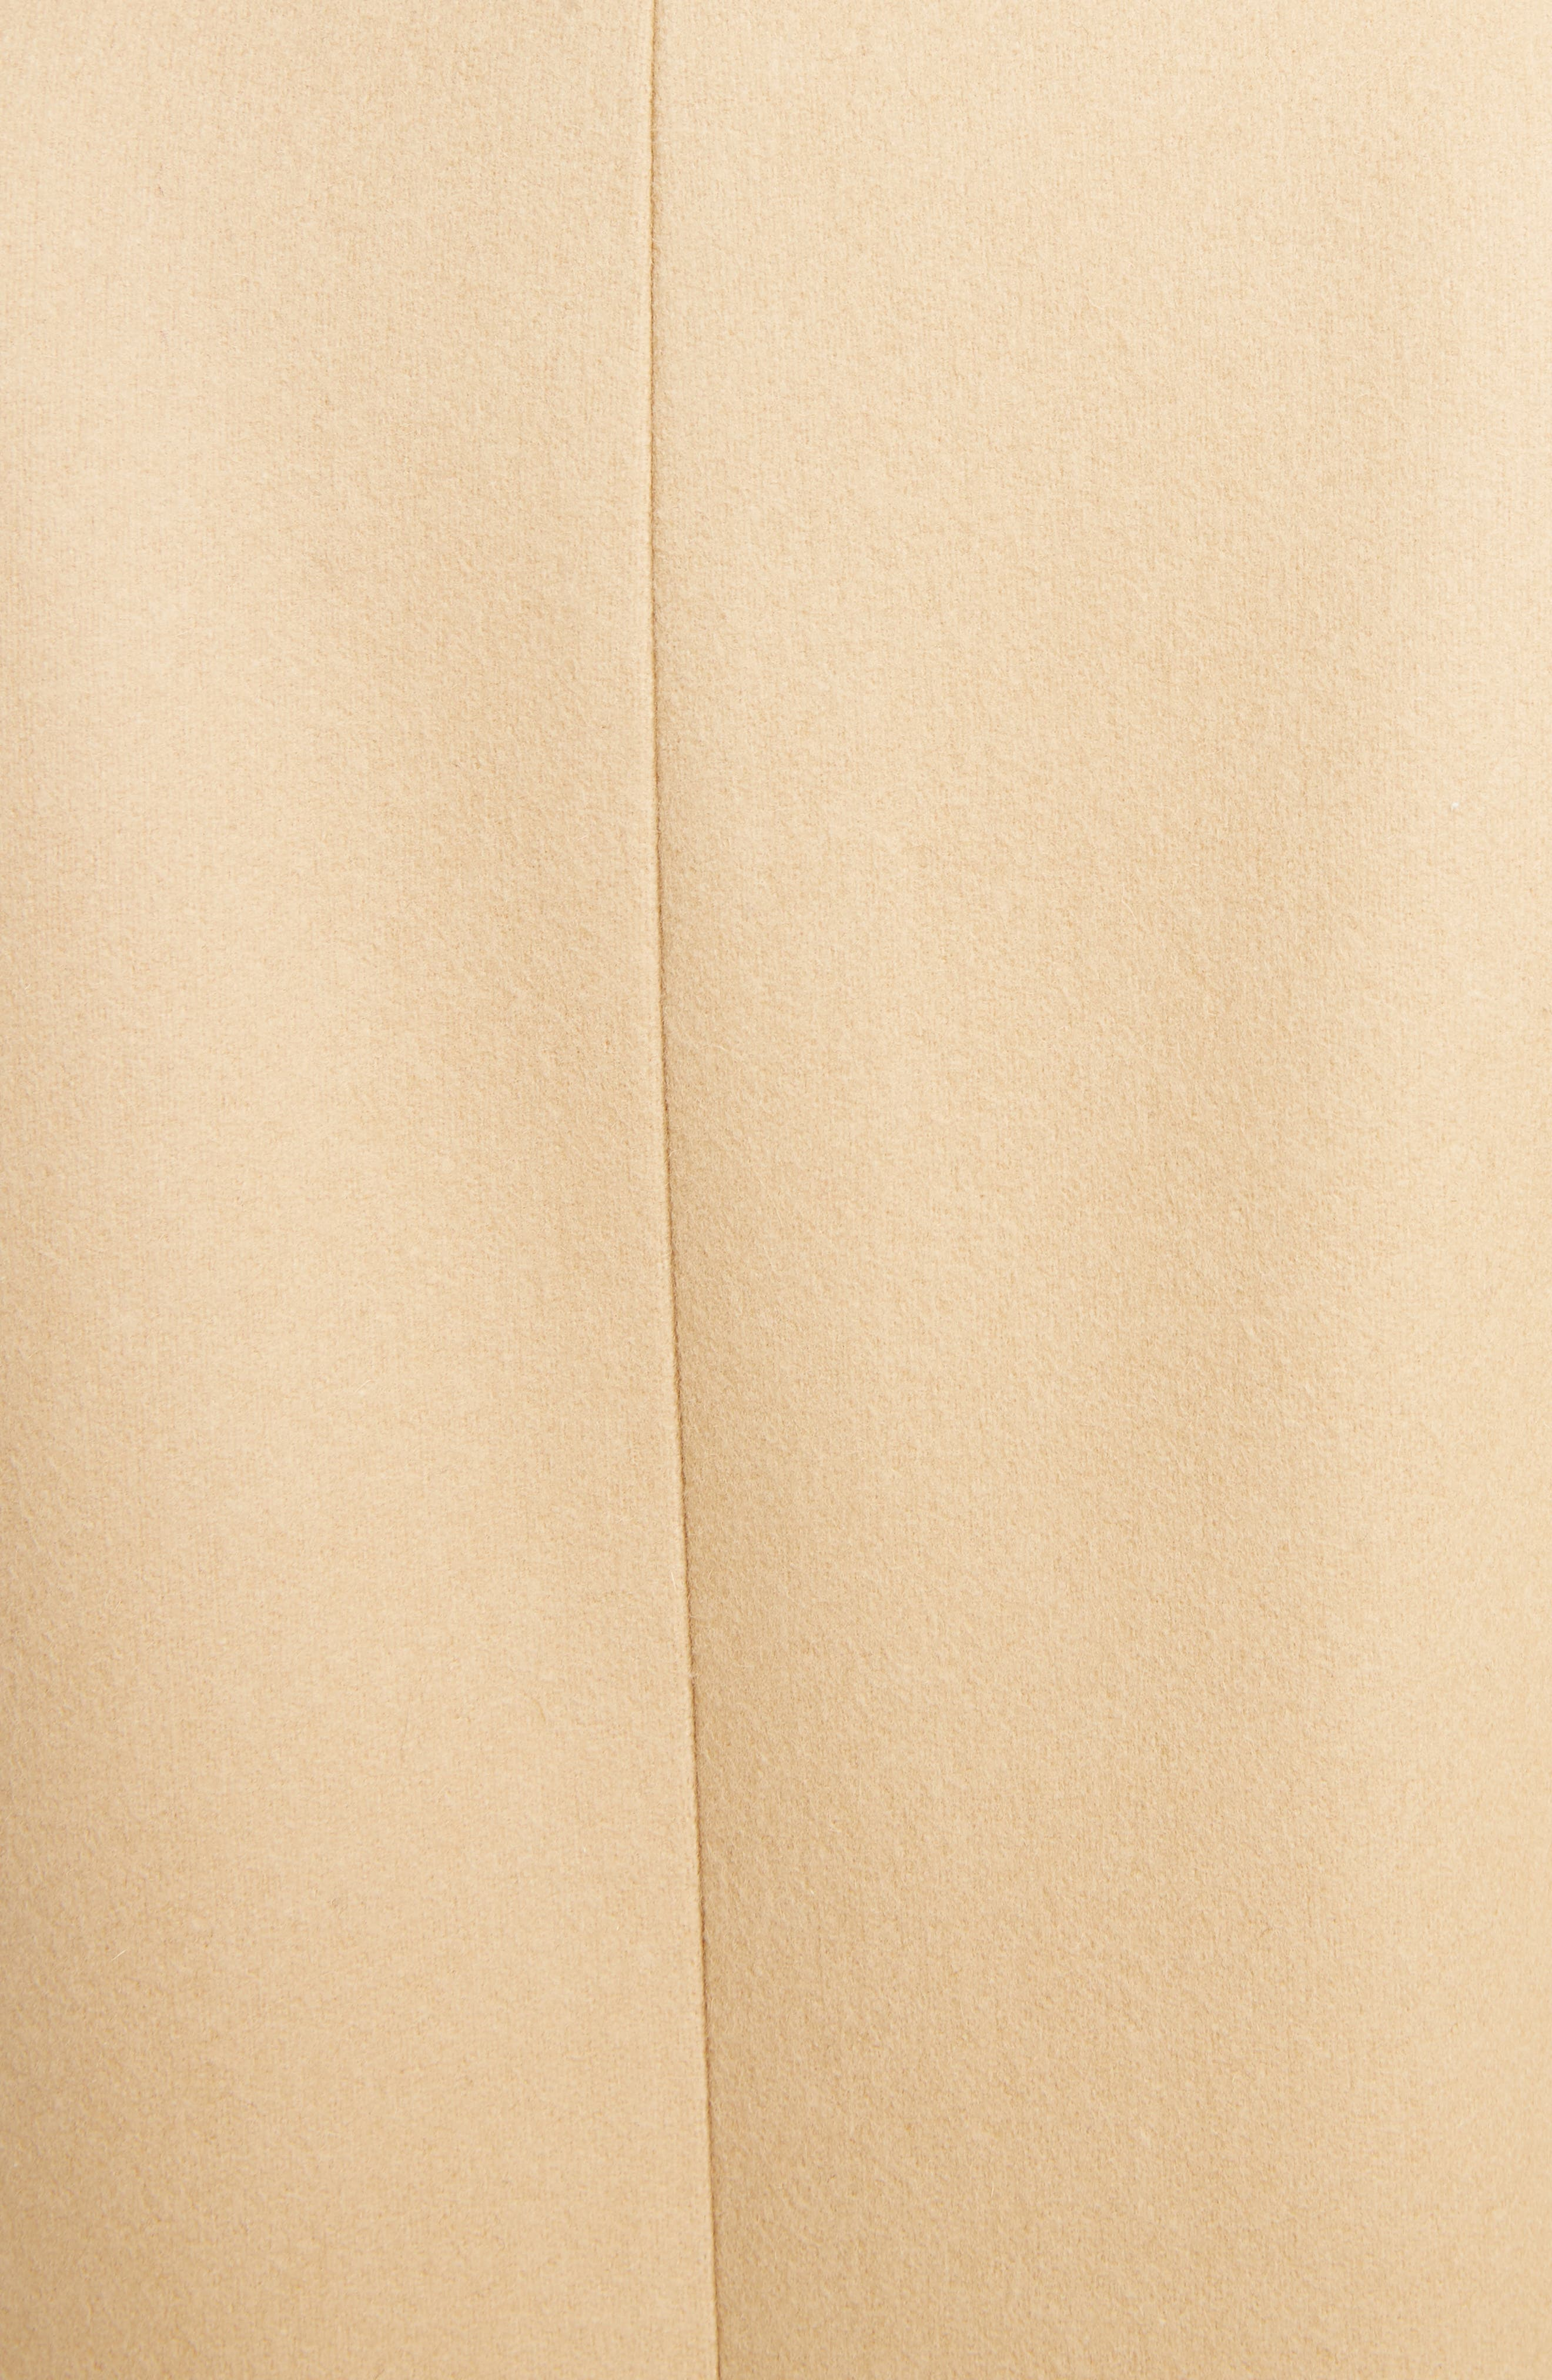 GIVENCHY,                             Double Breasted Wool Coat,                             Alternate thumbnail 5, color,                             250-BEIGE